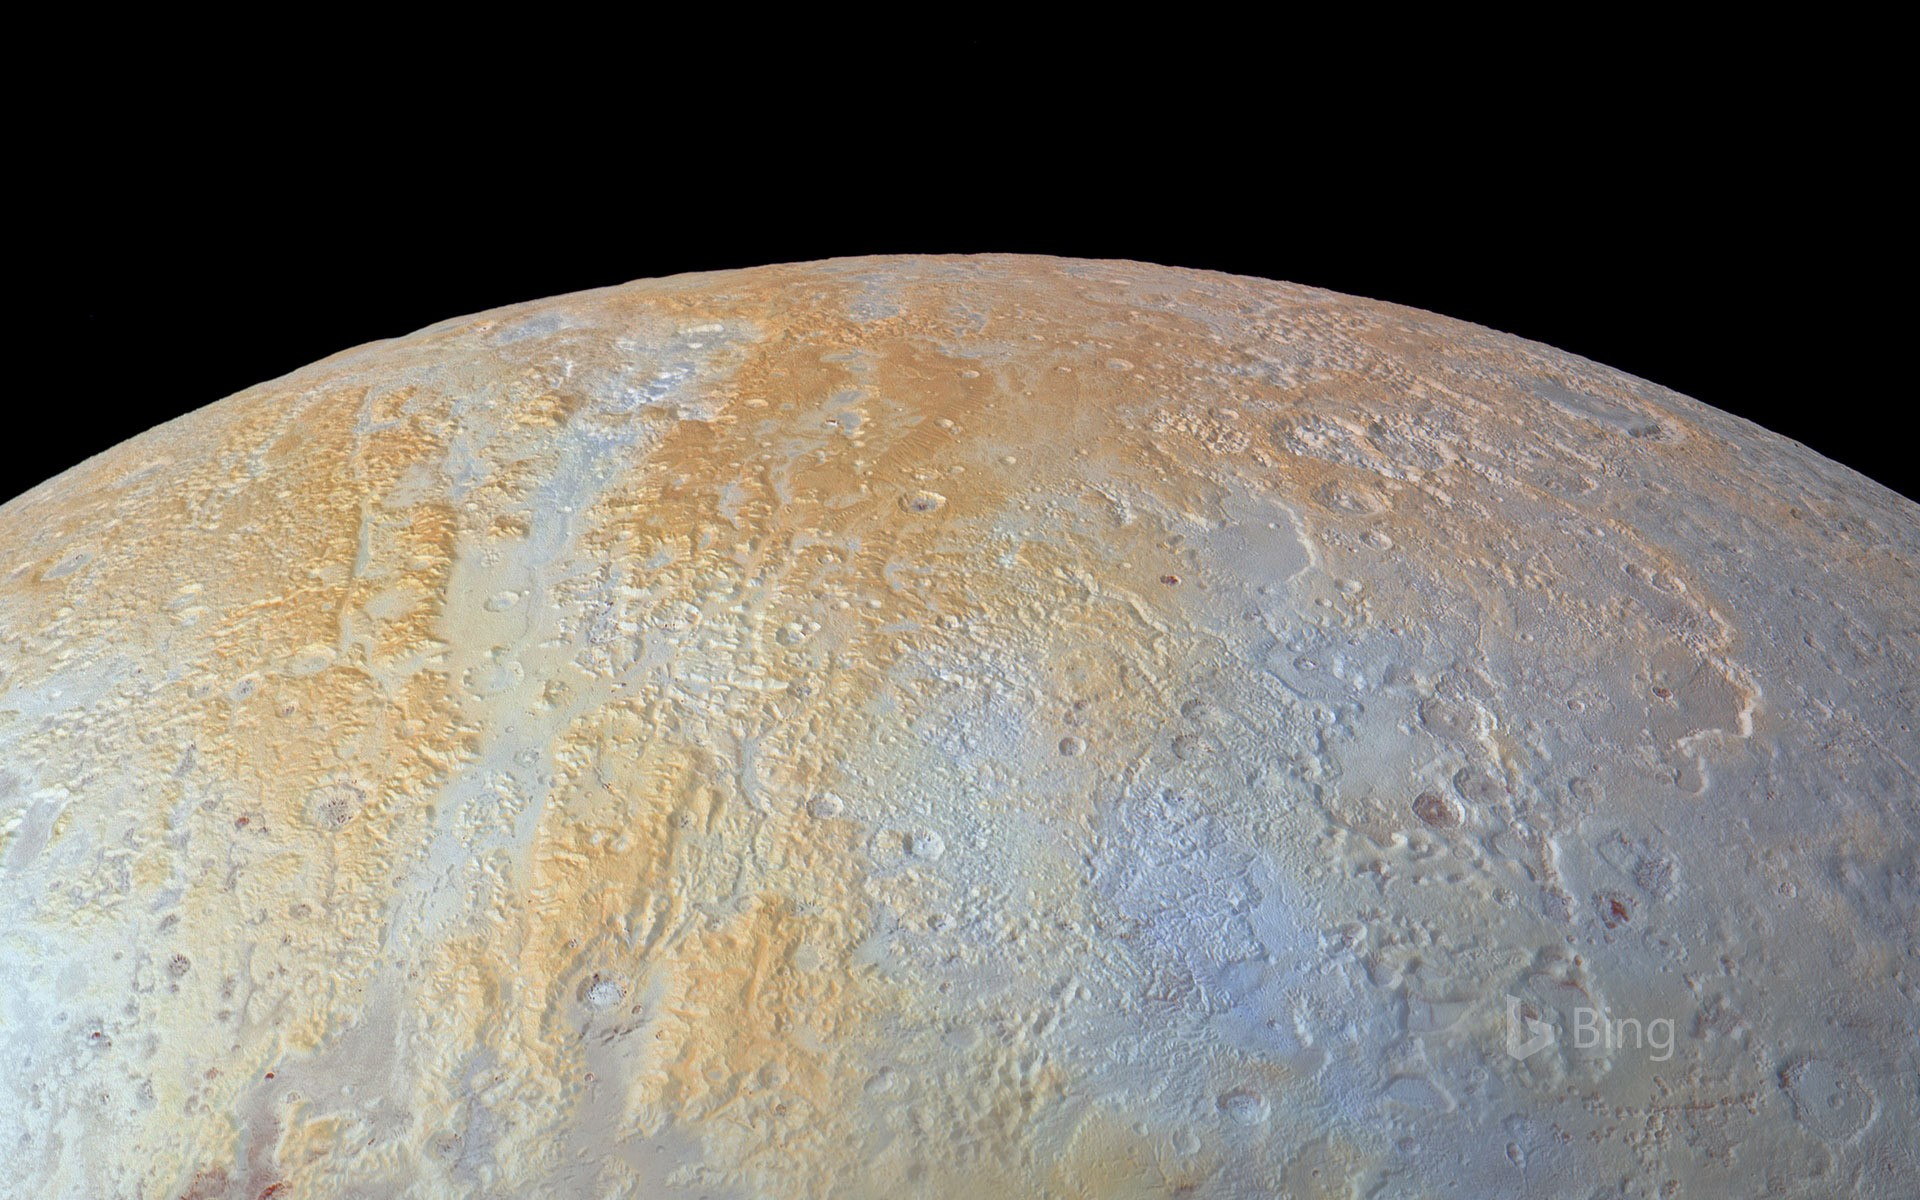 Pluto's north pole